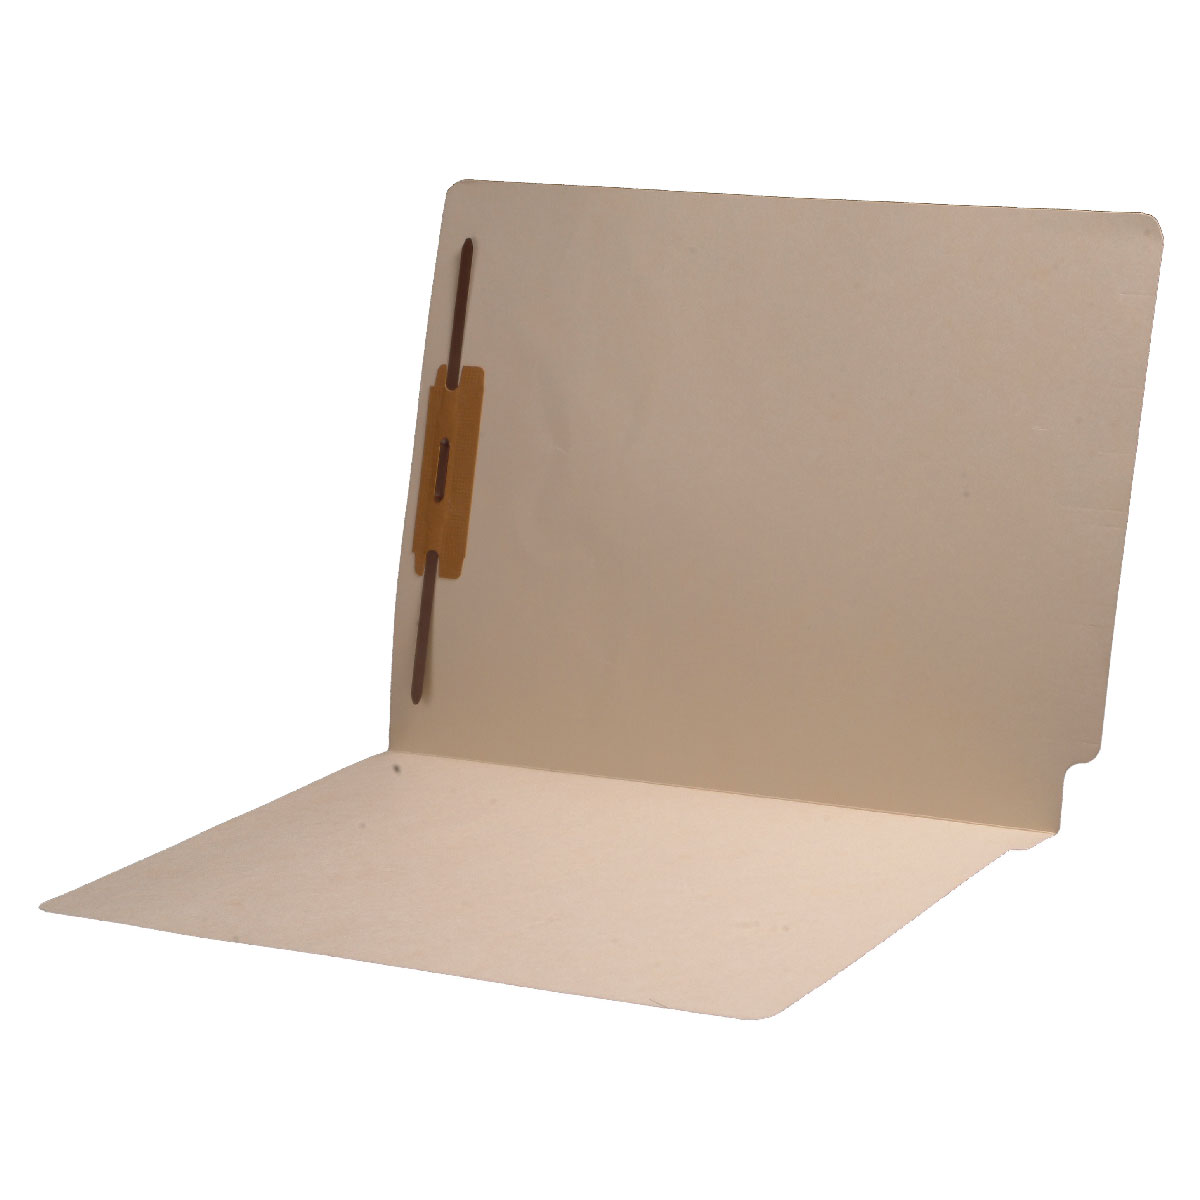 S-9135 - 11 pt Manila Folders, Full Cut End Tab, Letter Size, Fastener Pos #1 (Box of 50)